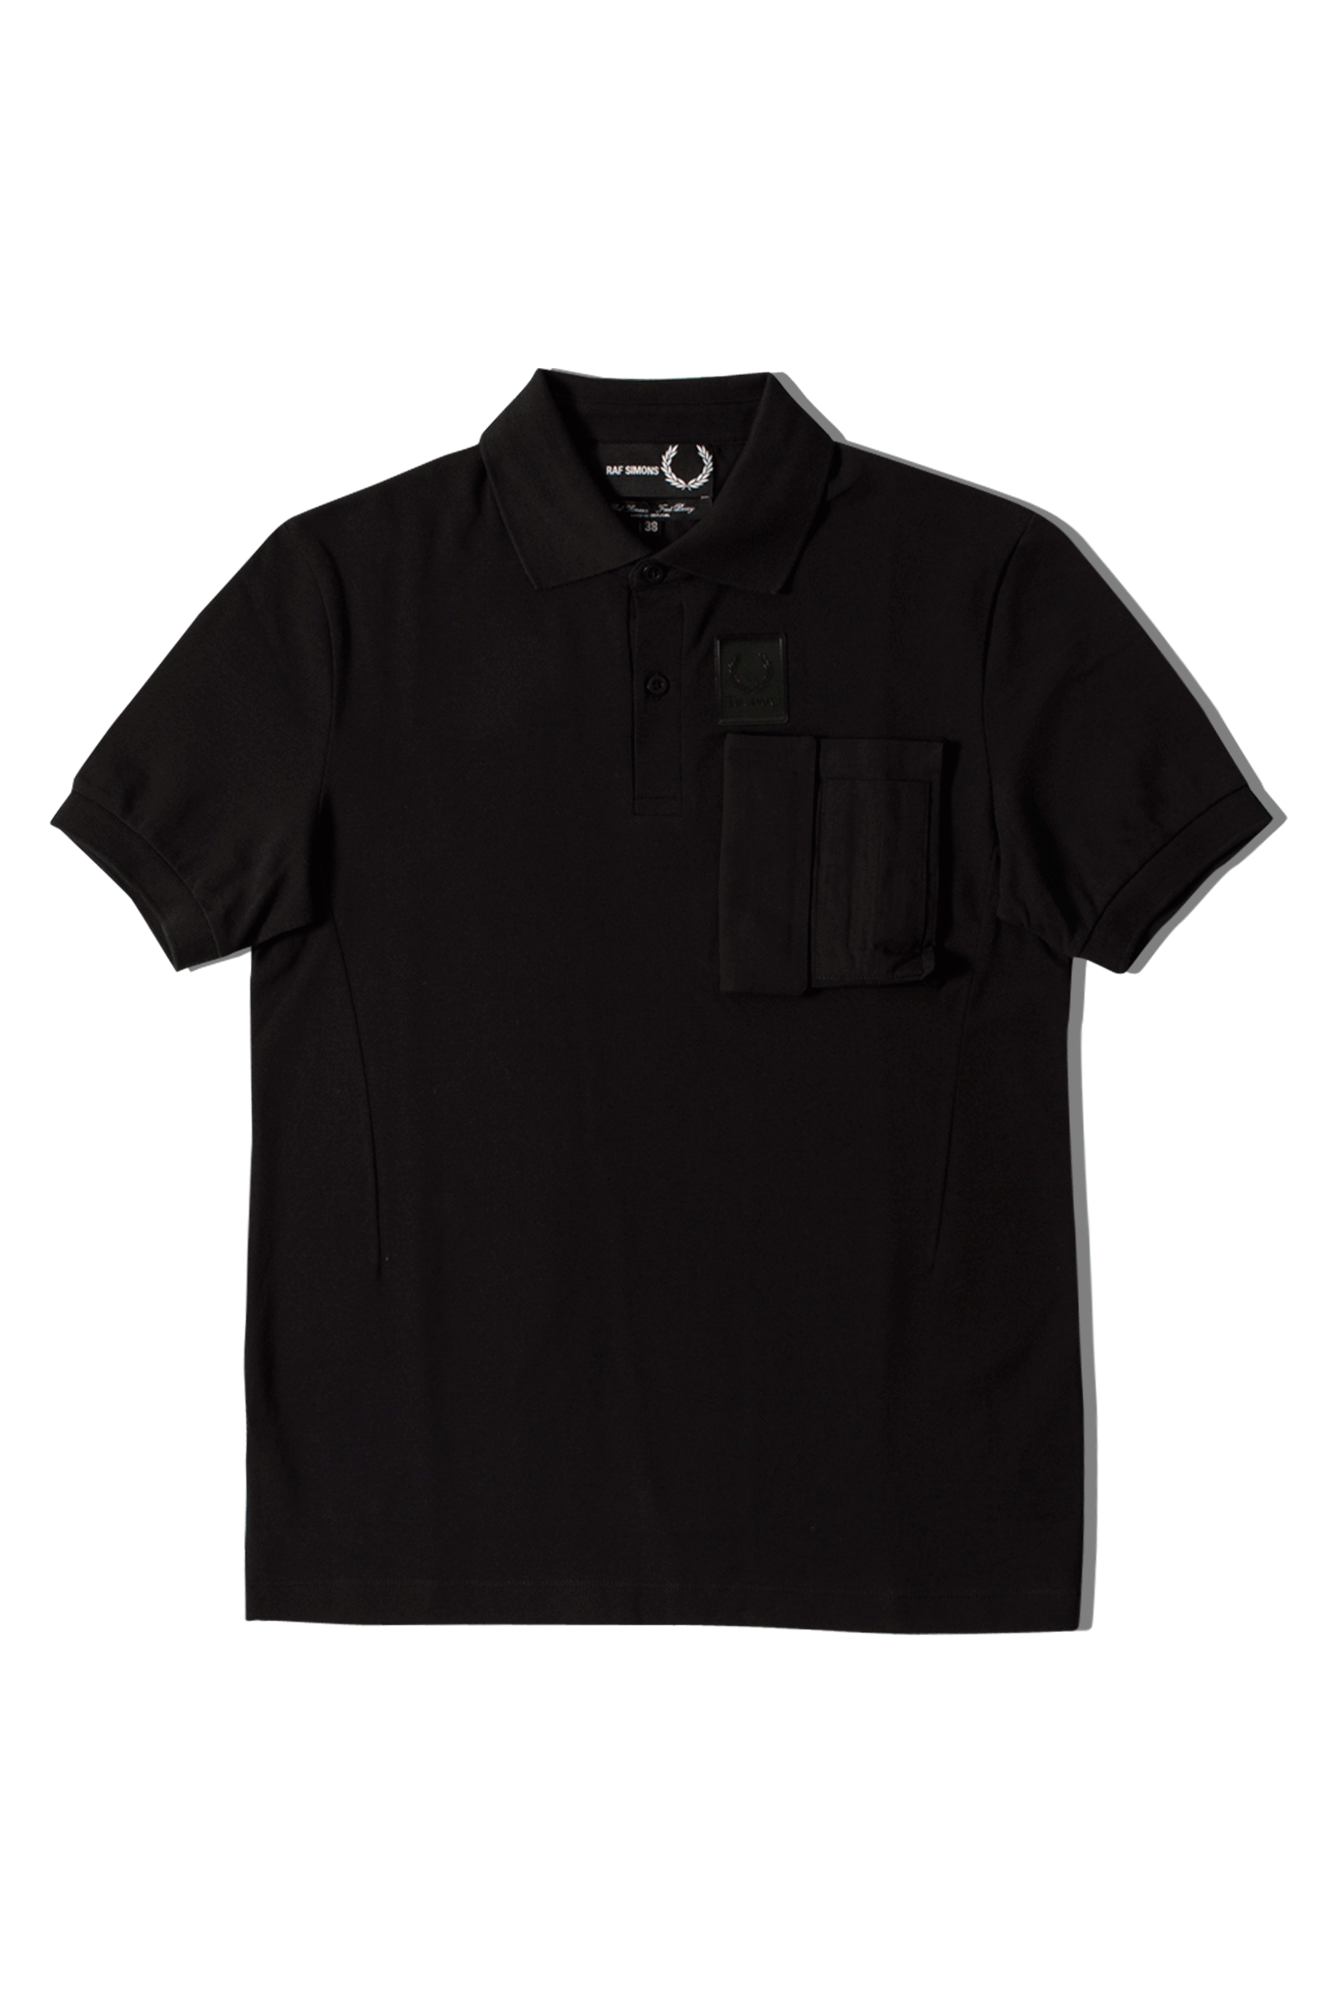 Fred Perry X Raf Simons Camicie Pocket Pique Shirt Nero SM5131#000#102#42 - One Block Down